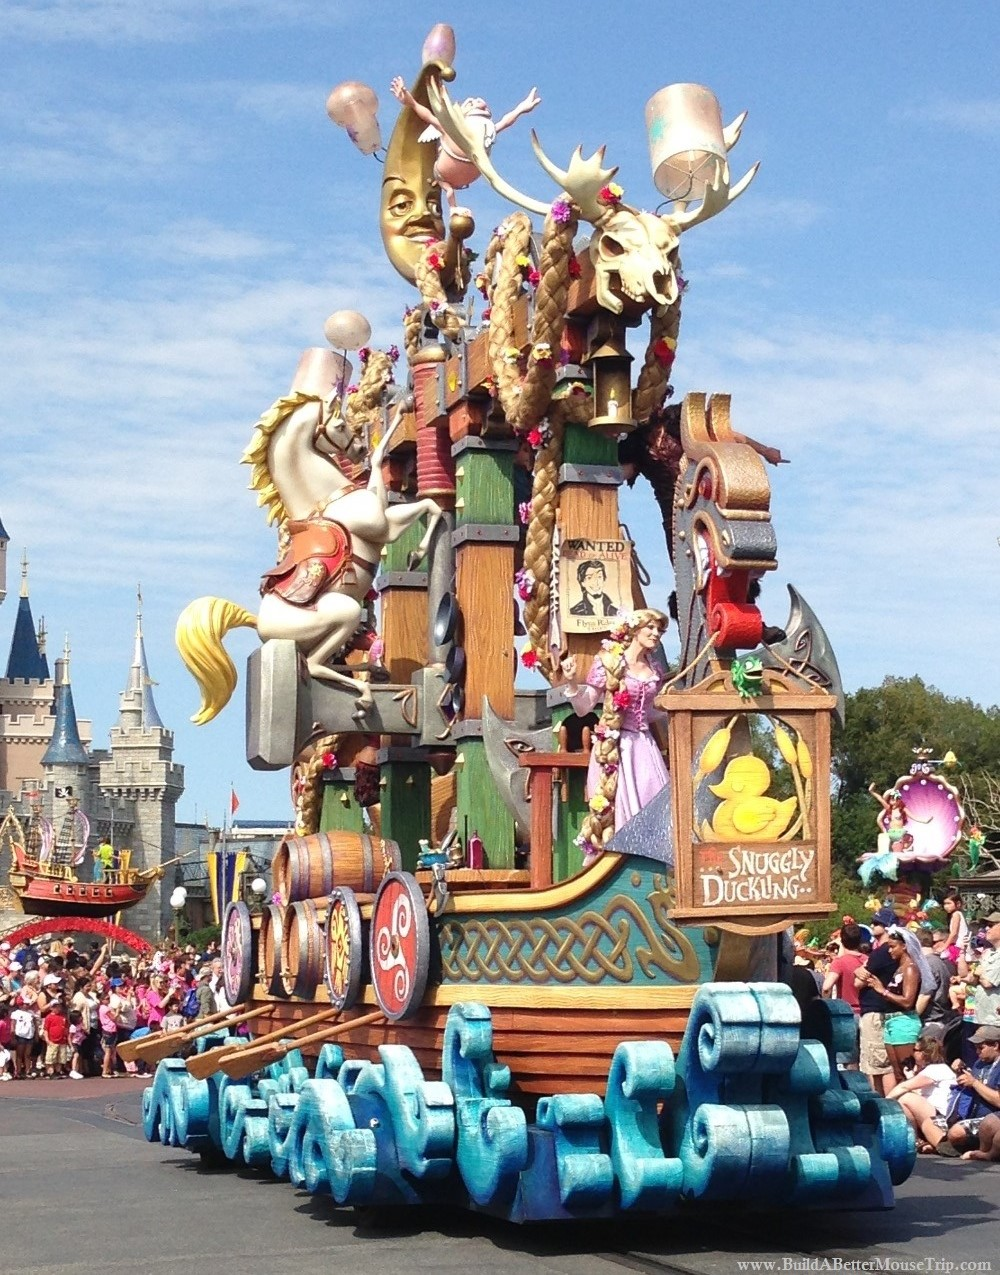 Tangled Float in the Festival of Fantasy Parade in the Magic Kingdom.